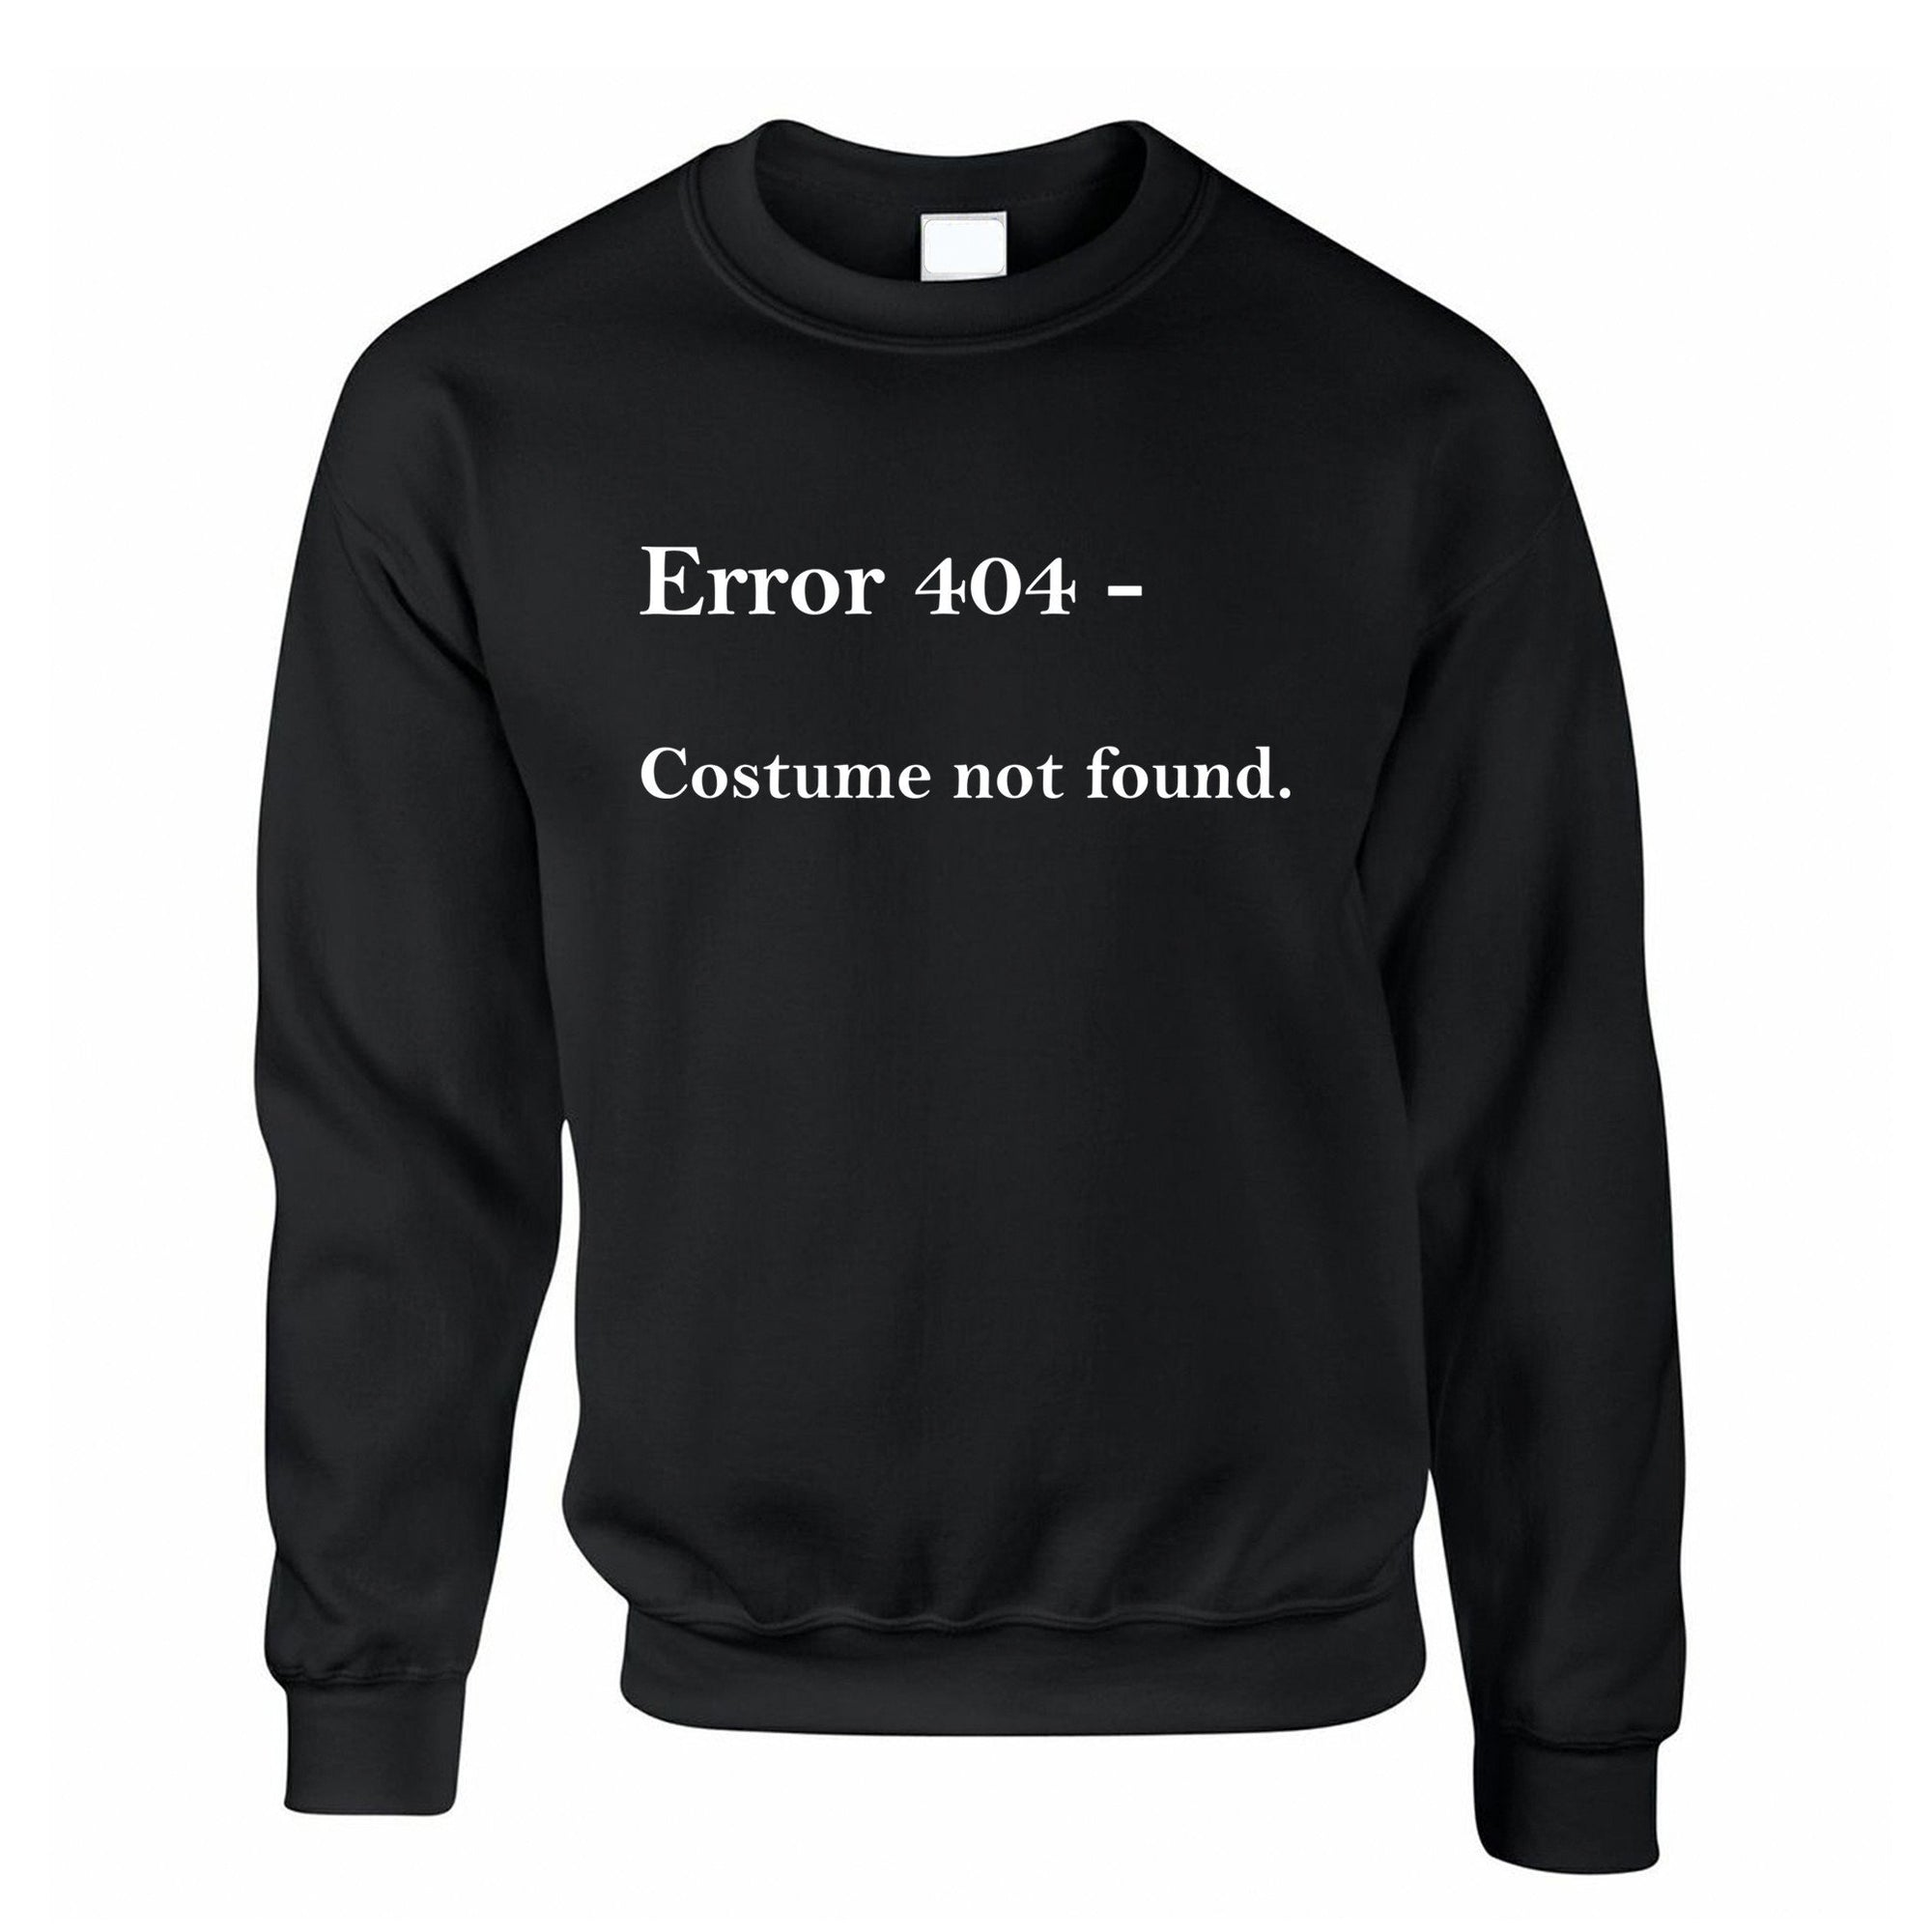 Nerdy Halloween Jumper Error 404, Costume Not Found Sweatshirt Sweater